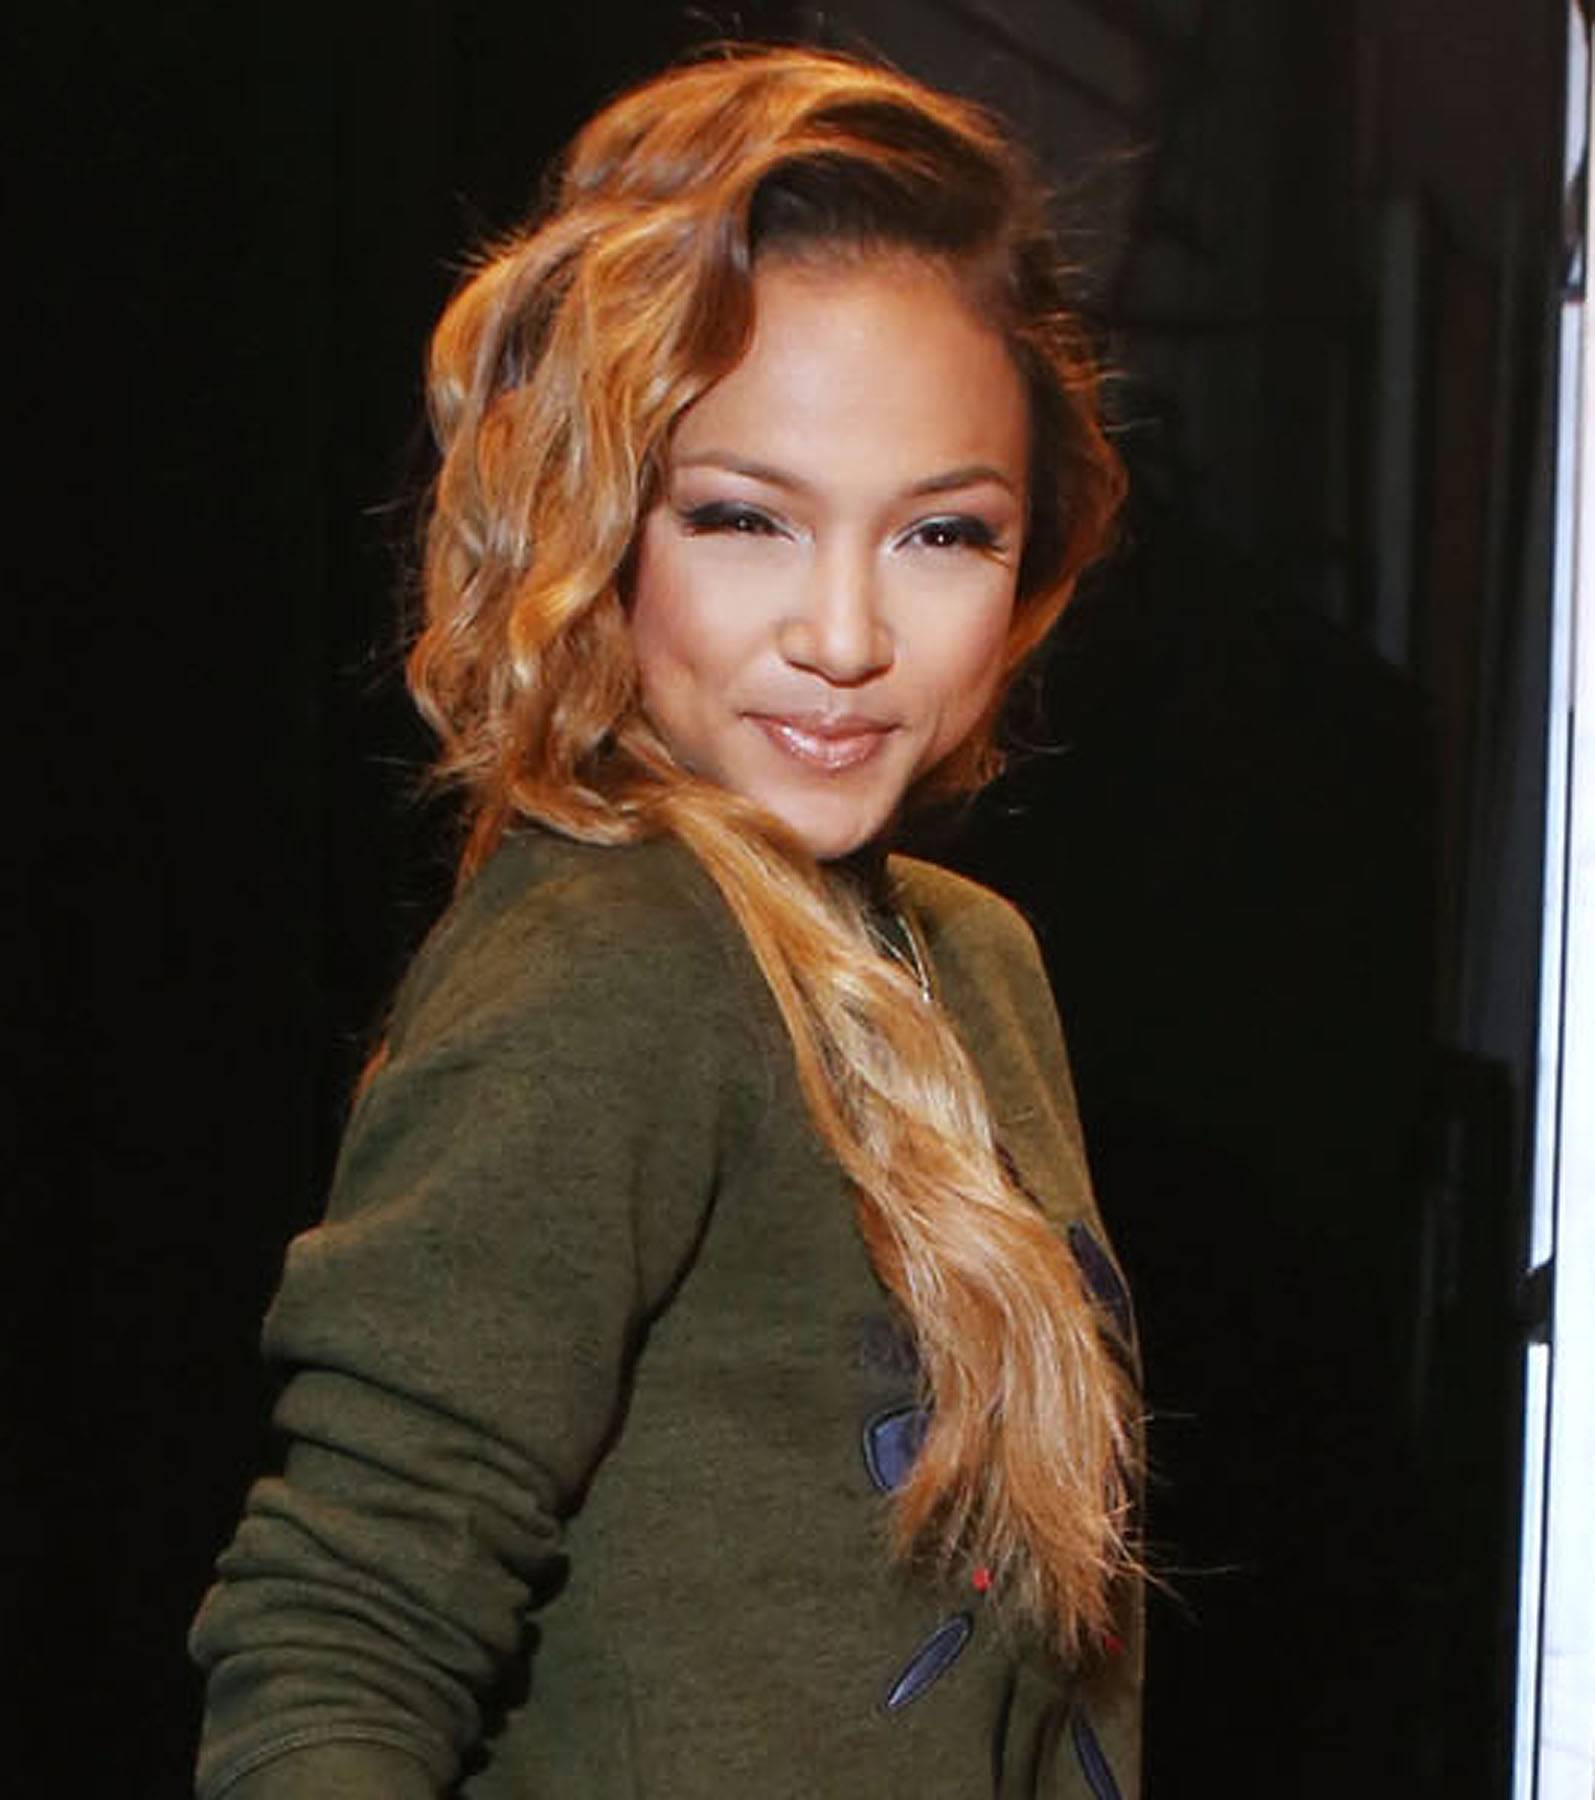 Karrueche Is Over the Hating - Karrueche Tran is tired of people coming for her neck on social media. The fed up scenester recently tweeted a series of comments directed toward her haters who feel that she has no talent and refer to her as Chris Brown's side chick. In short, she said she had some hugs for all those who are quick to diss on social media. She also mentioned that she's working on some things that will display what she has been working on lately and silence the negative chatter. One of those things was a limited edition T-shirt with PacSun that she released earlier this summer, but we're looking forward to what else she has up her sleeves.   (Photo: Bennett Raglin/BET/Getty Images)